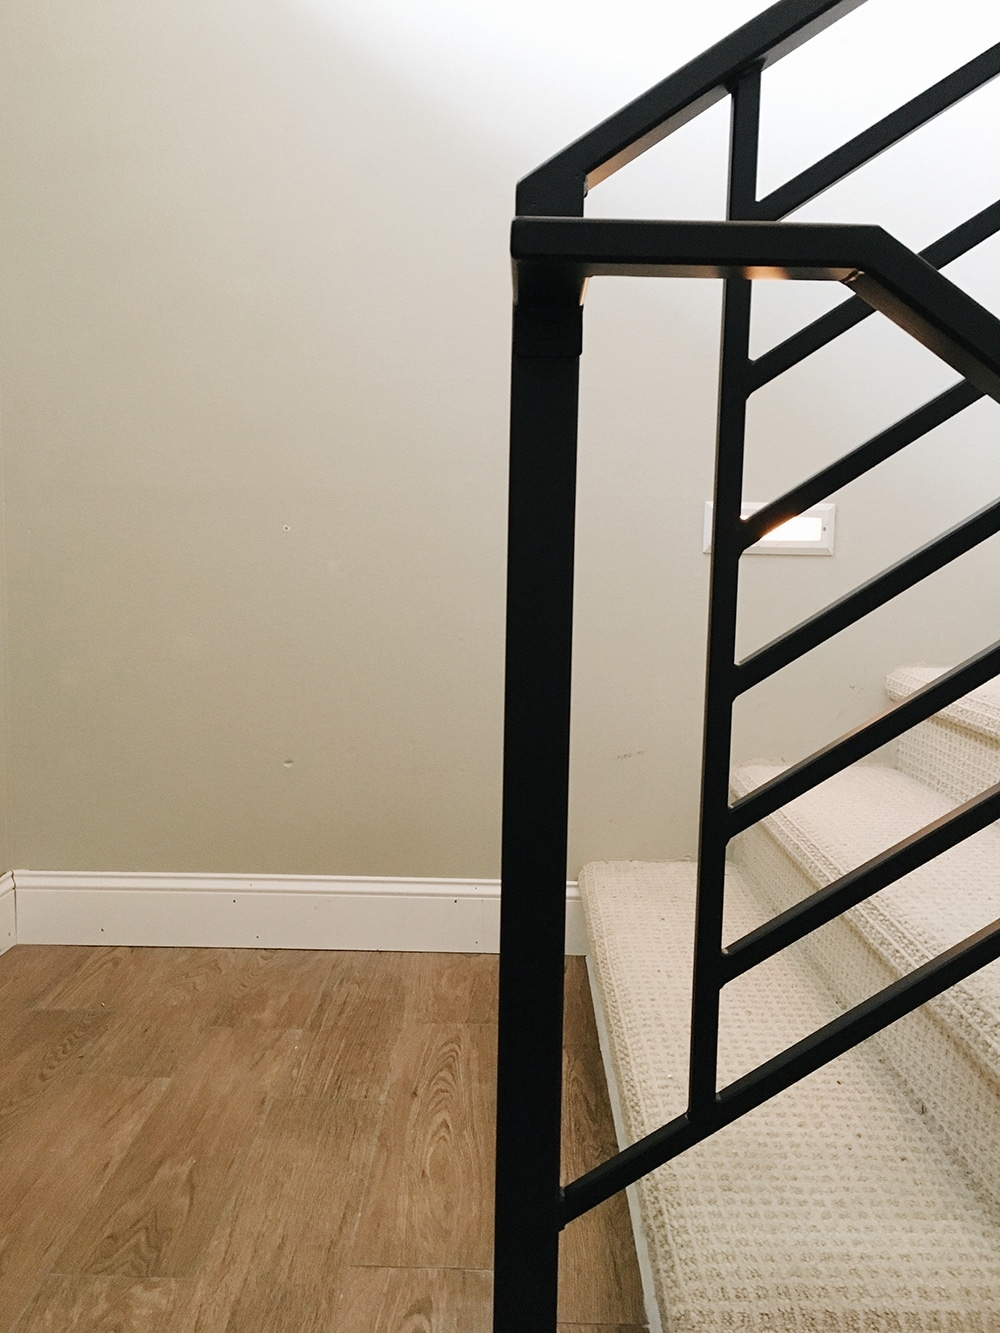 All The Details On Our New Horizontal Stair Railing Chris Loves   Horizontal Iron Stair Railing   Chris Loves   Modern   Popular   Low Cost   Remodel